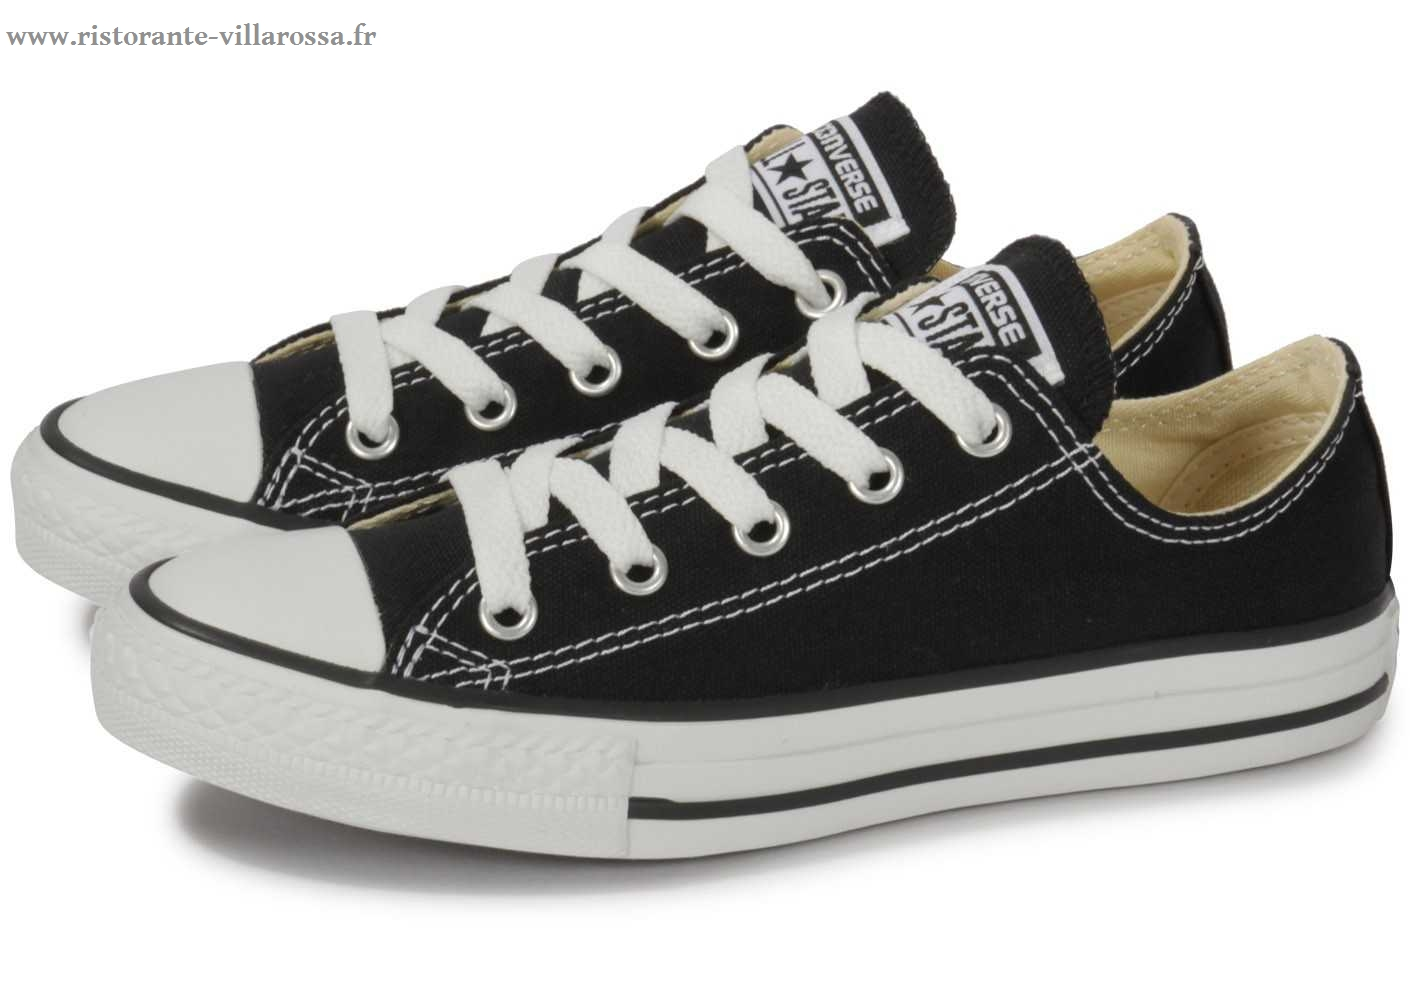 converse all star blanche basse femme pas cher